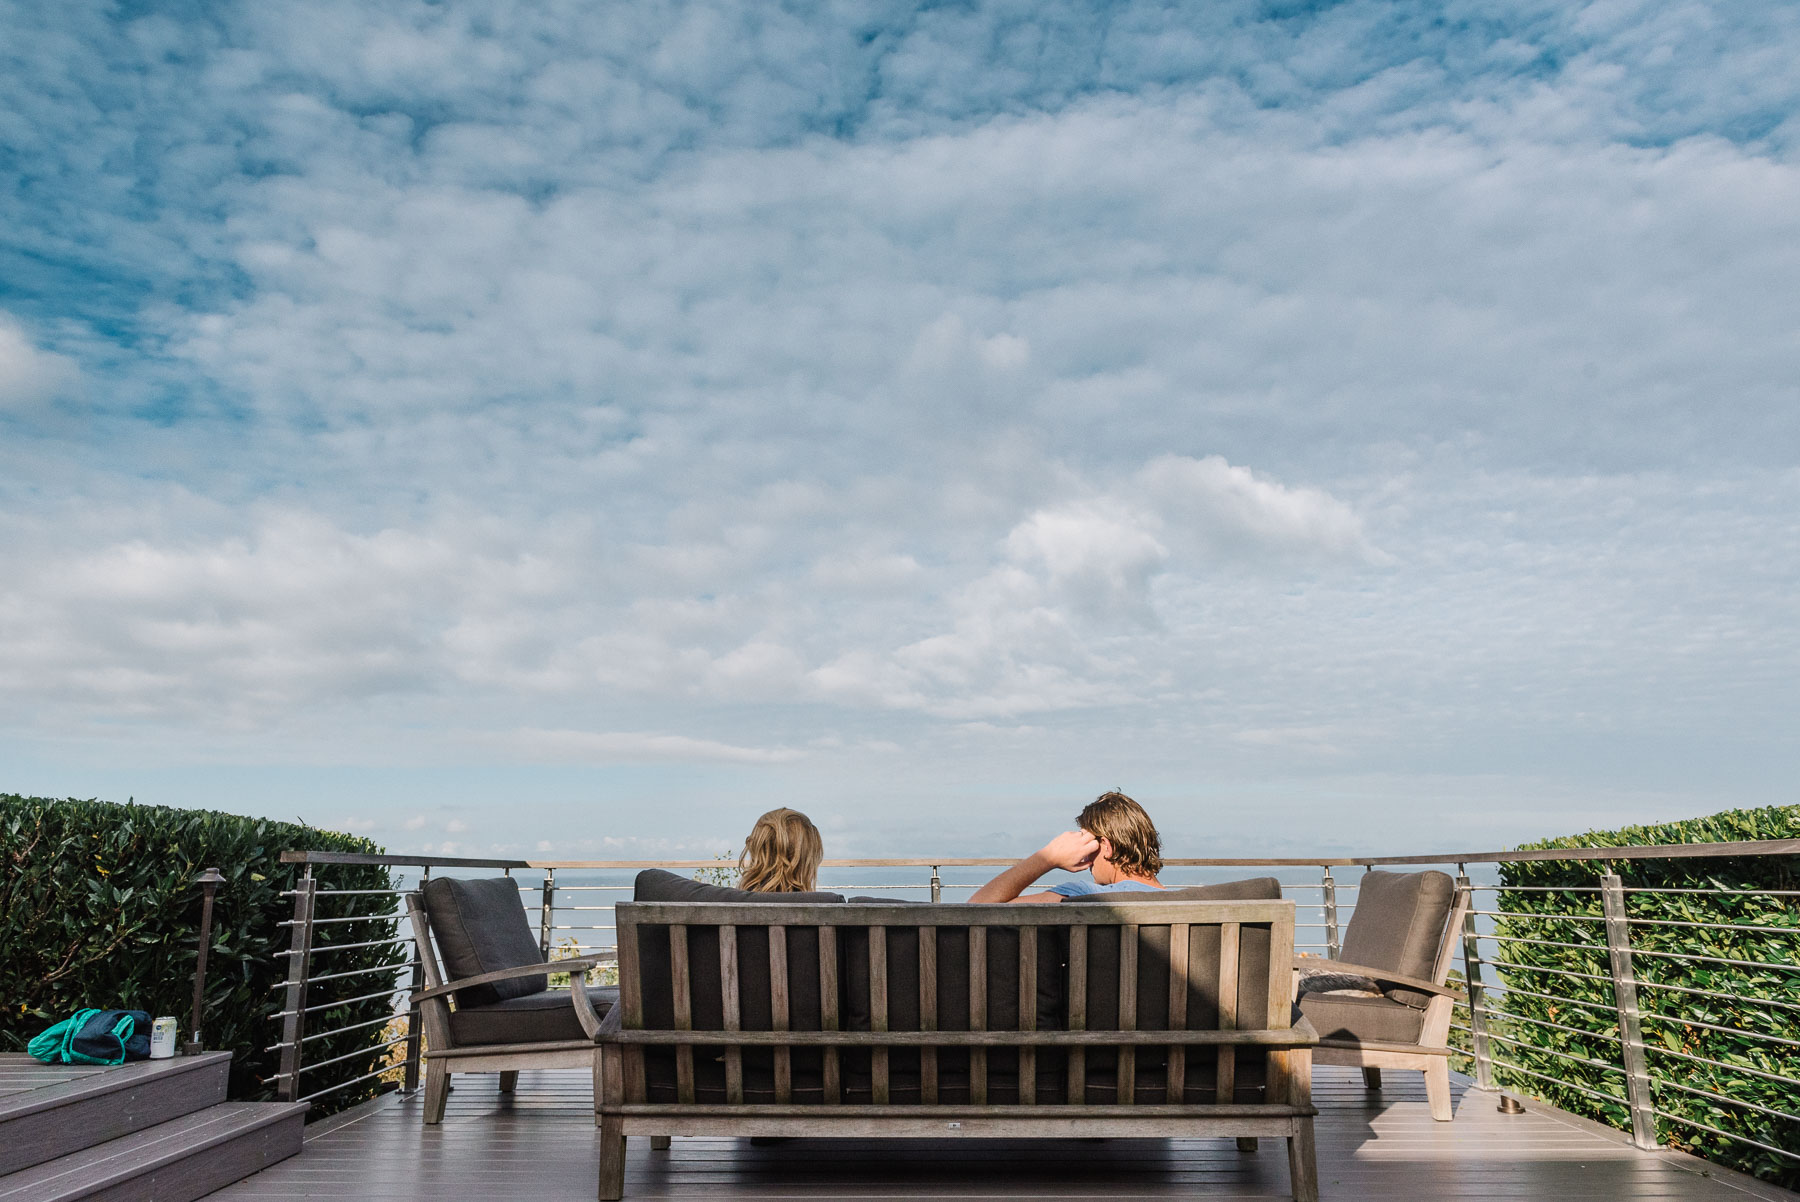 Wide angle view of family sitting on patio furniture outside on sunny day overlooking ocean